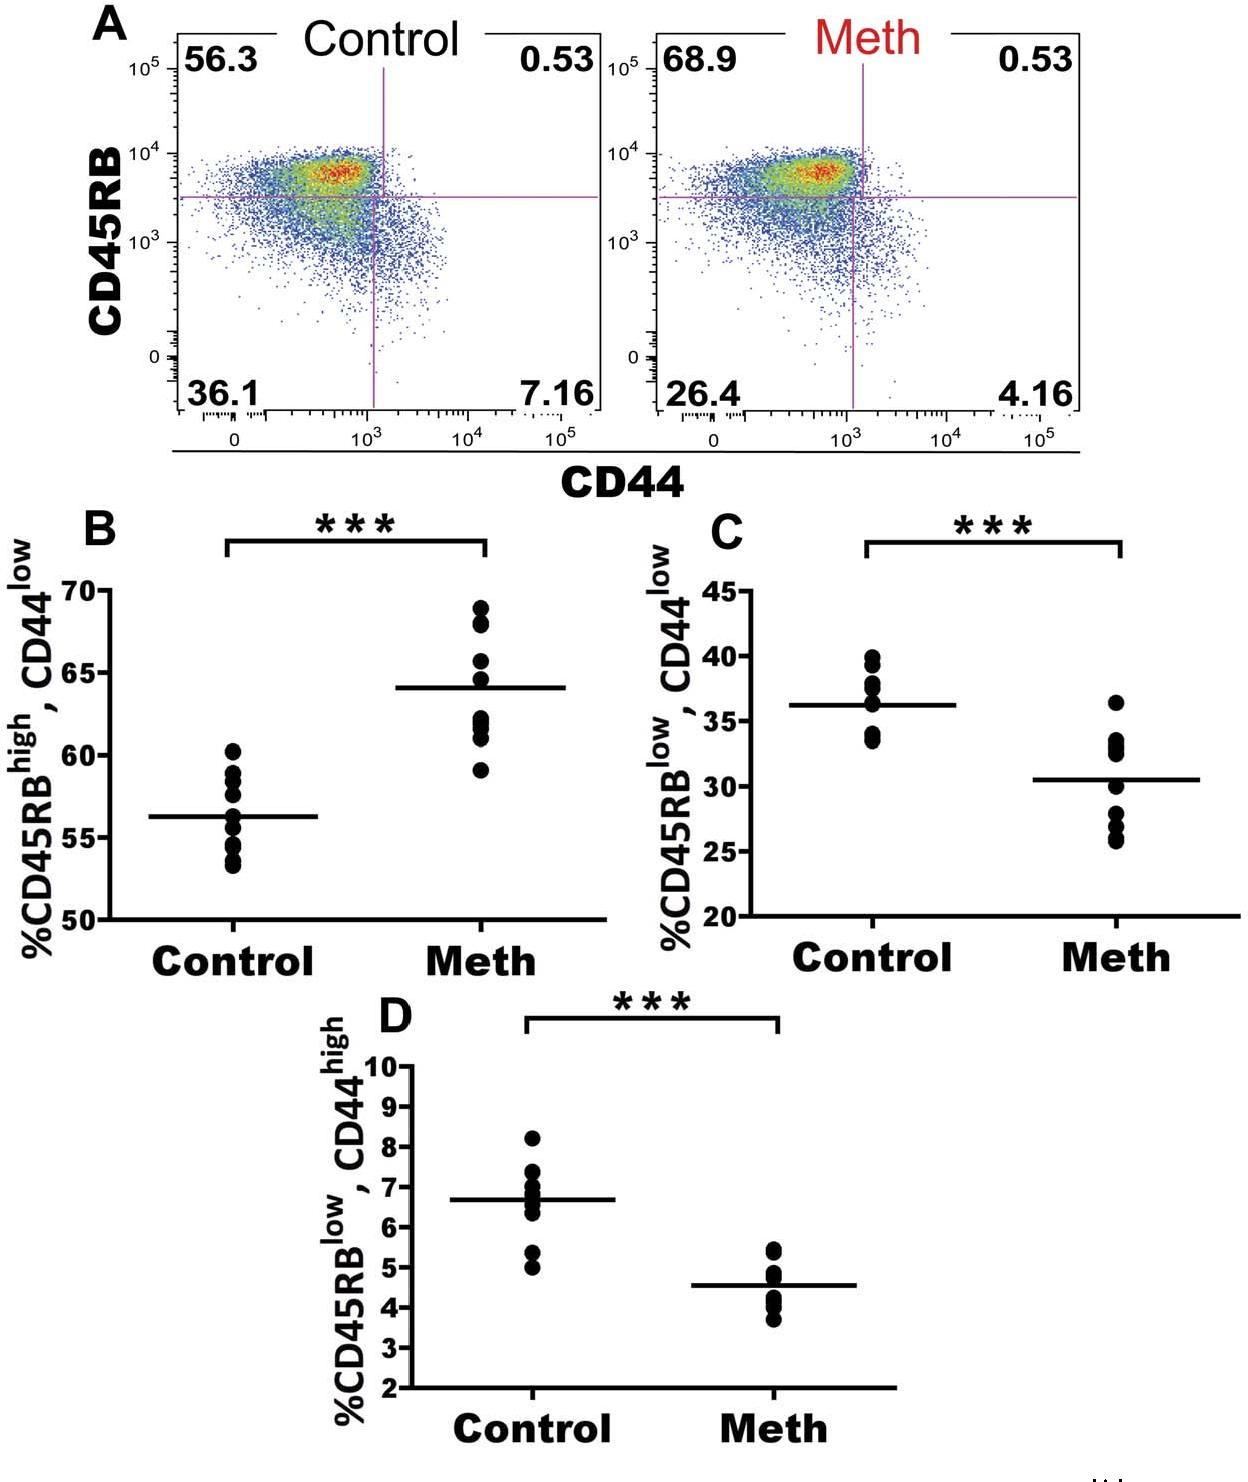 Figure 6. Meth causes reduced proportions of alternatively spliced CD4 T cells among the splenic CD62Lhigh compartment. Meth and control mice were analyzed for surface expression of CD45RB and CD44 on the CD62Lhigh subset. CD45RB expression is downregulated upon antigen experience and can be used to gauge activation levels of CD4 T cells. A. CD45RB and CD44 on CD62Lhigh splenic CD4 T cells. B–D. Meth-treated animals had a higher proportion of CD45RBhigh, CD44low CD4 T cells compared to controls. Meth-treated animals also exhibited lower proportions of CD45RBlow, CD44low and CD45RBlow, CD44highsubsets compared to controls. ***p,0.001 calculated by Mann-Whitney U Test. Bars represent mean. Data are from 2 experiments of 5 animals per treatment group per experiment. doi:10.1371/journal.pone.0049897.g006